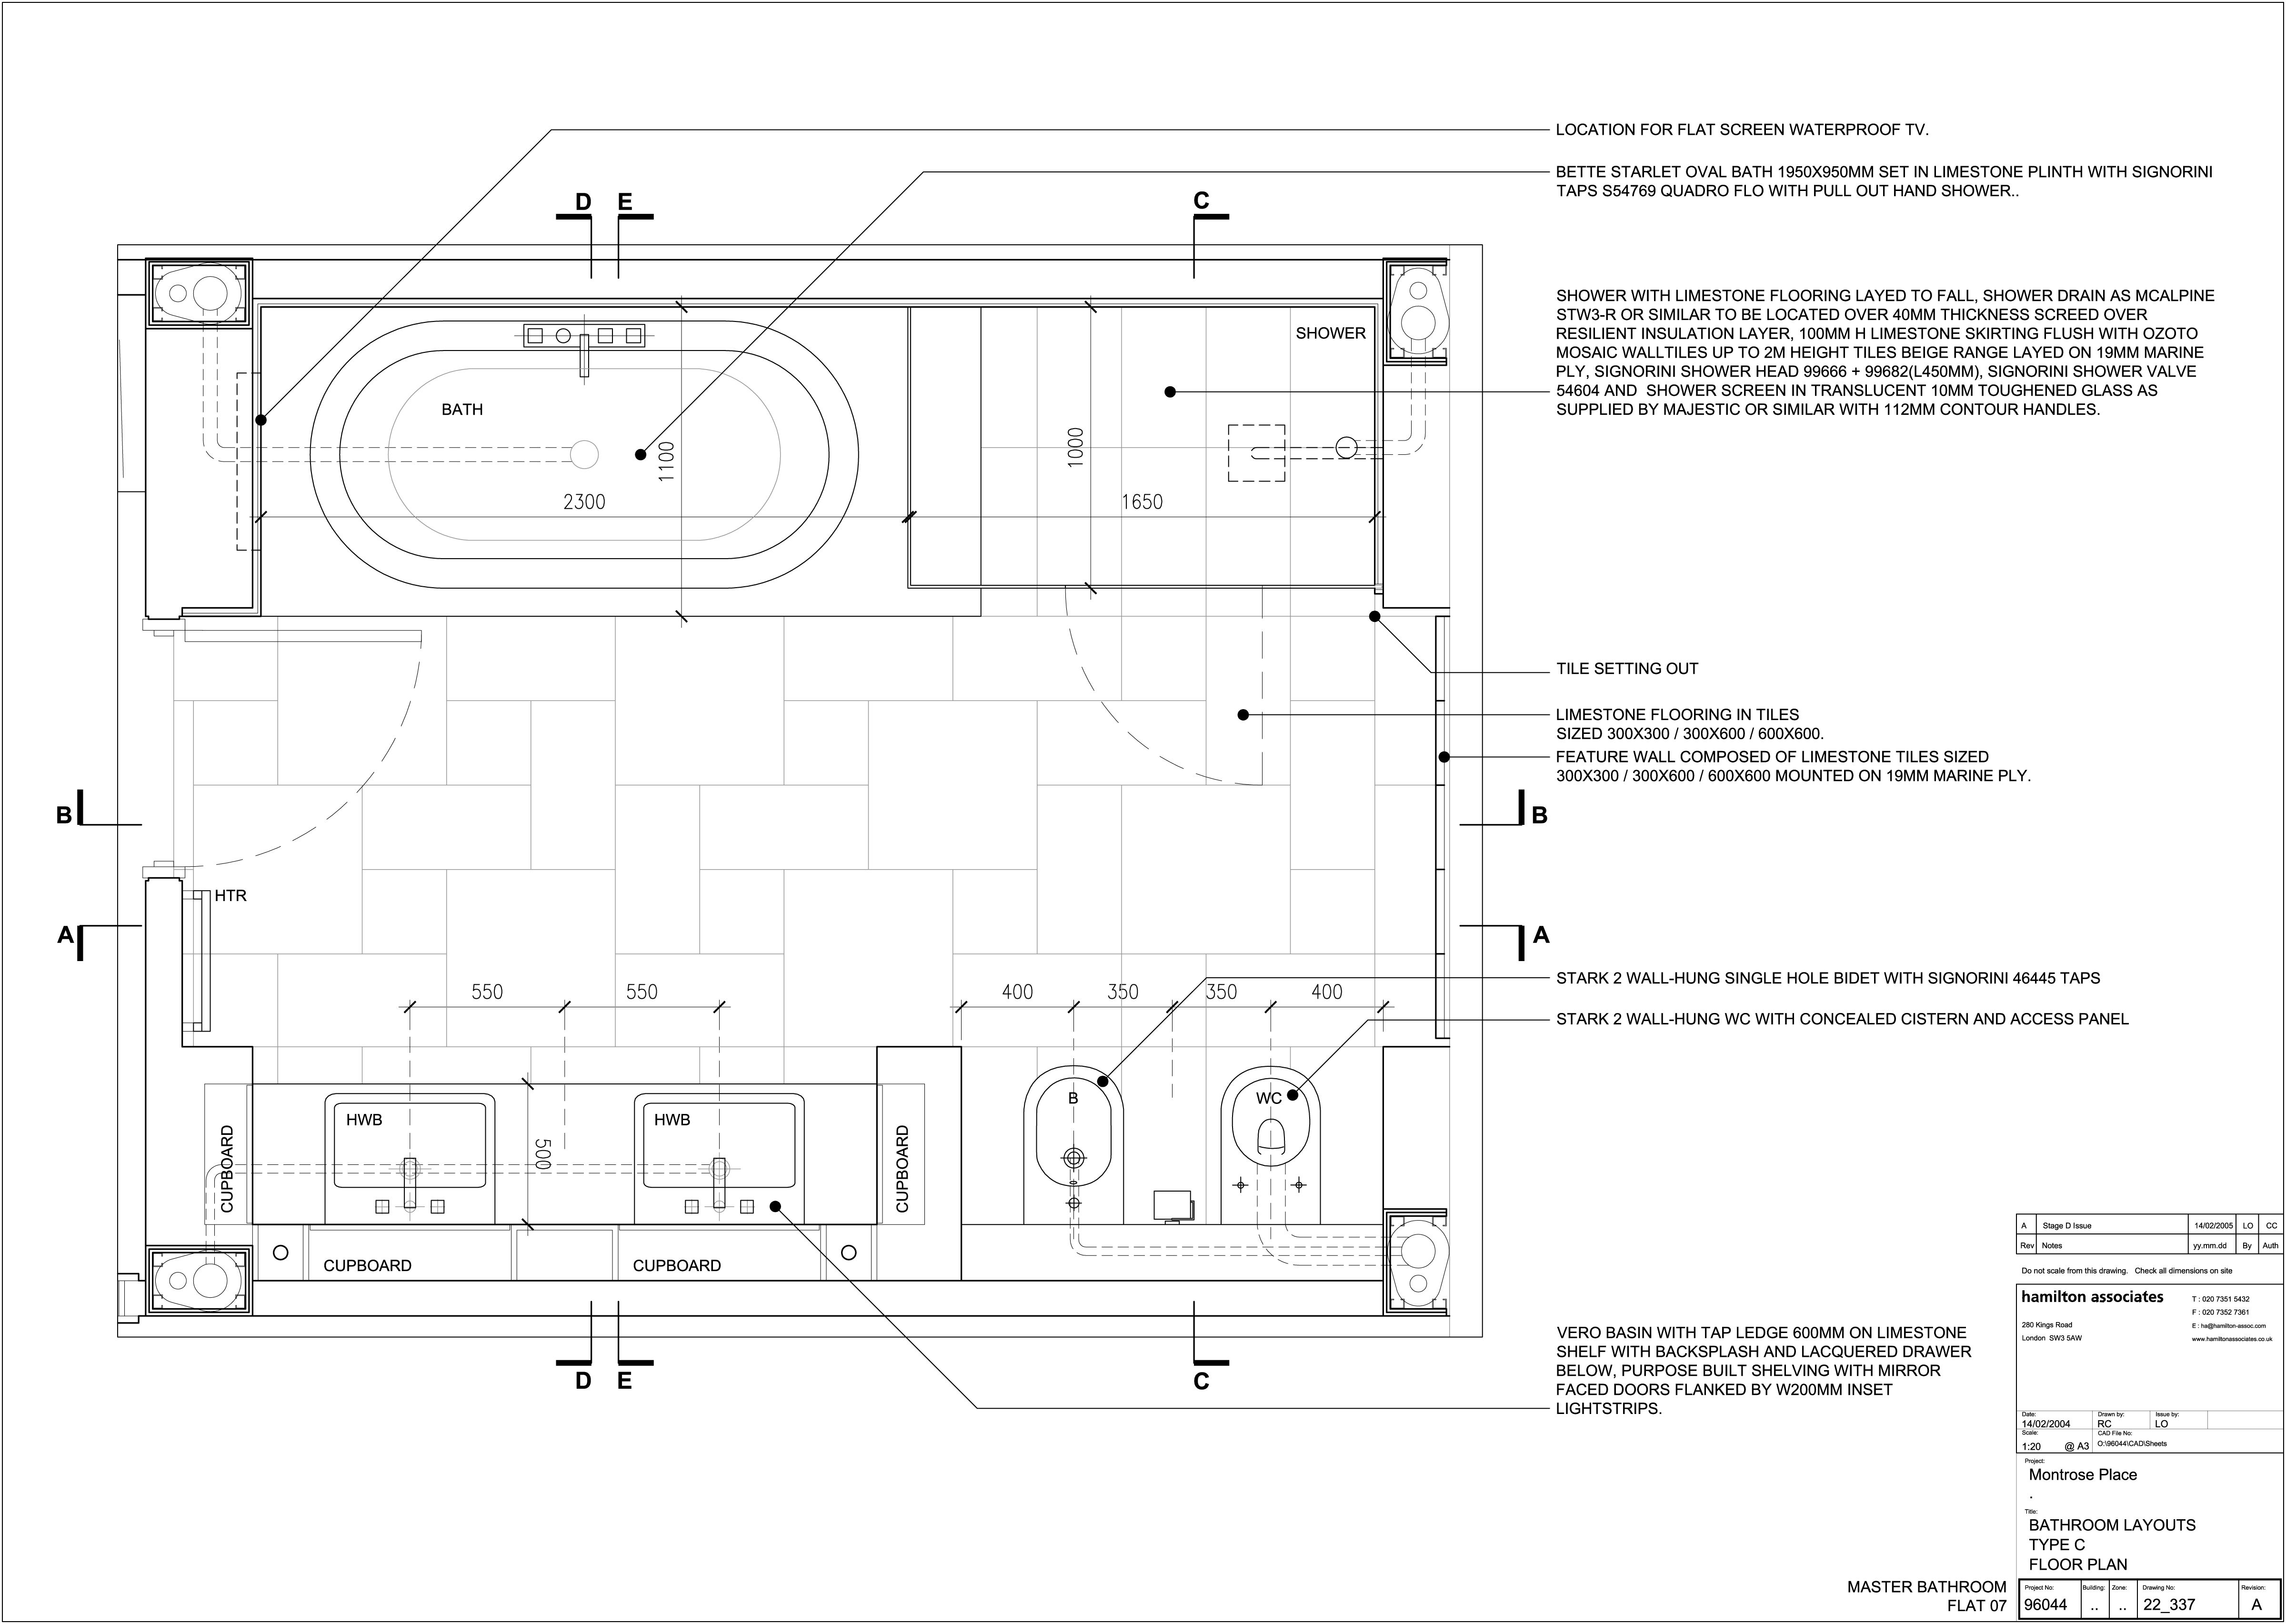 Detailed layout of bathroom